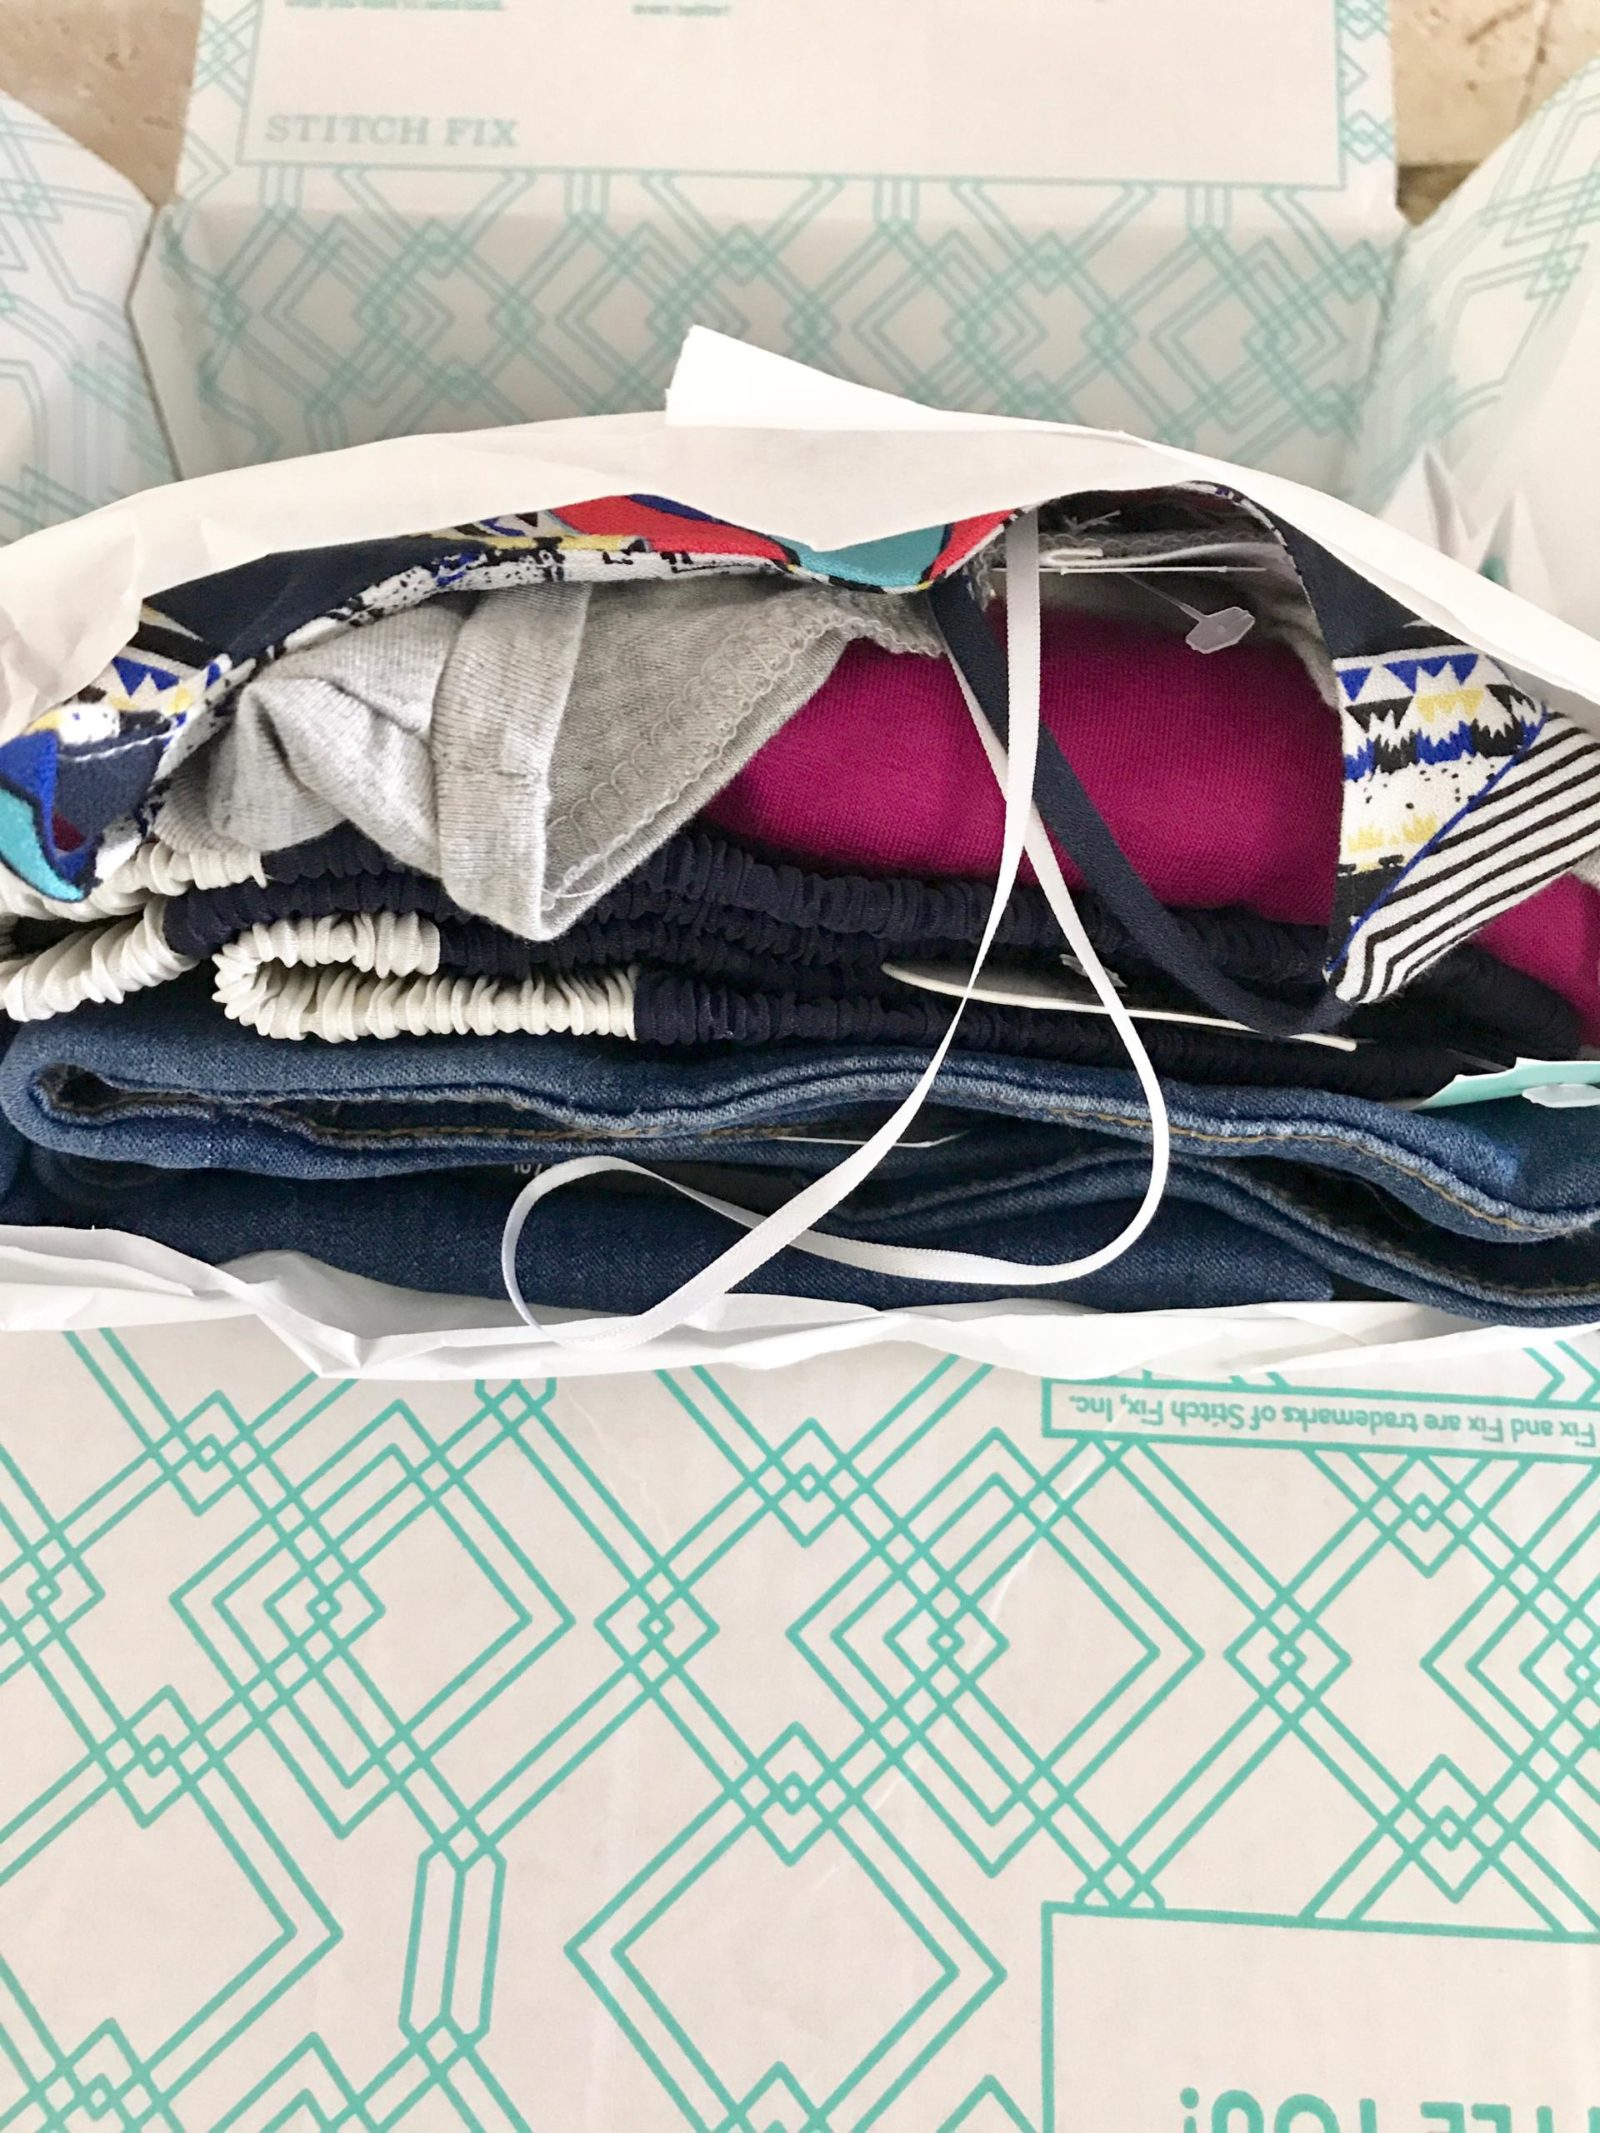 Stitch Fix: August 2017 Review